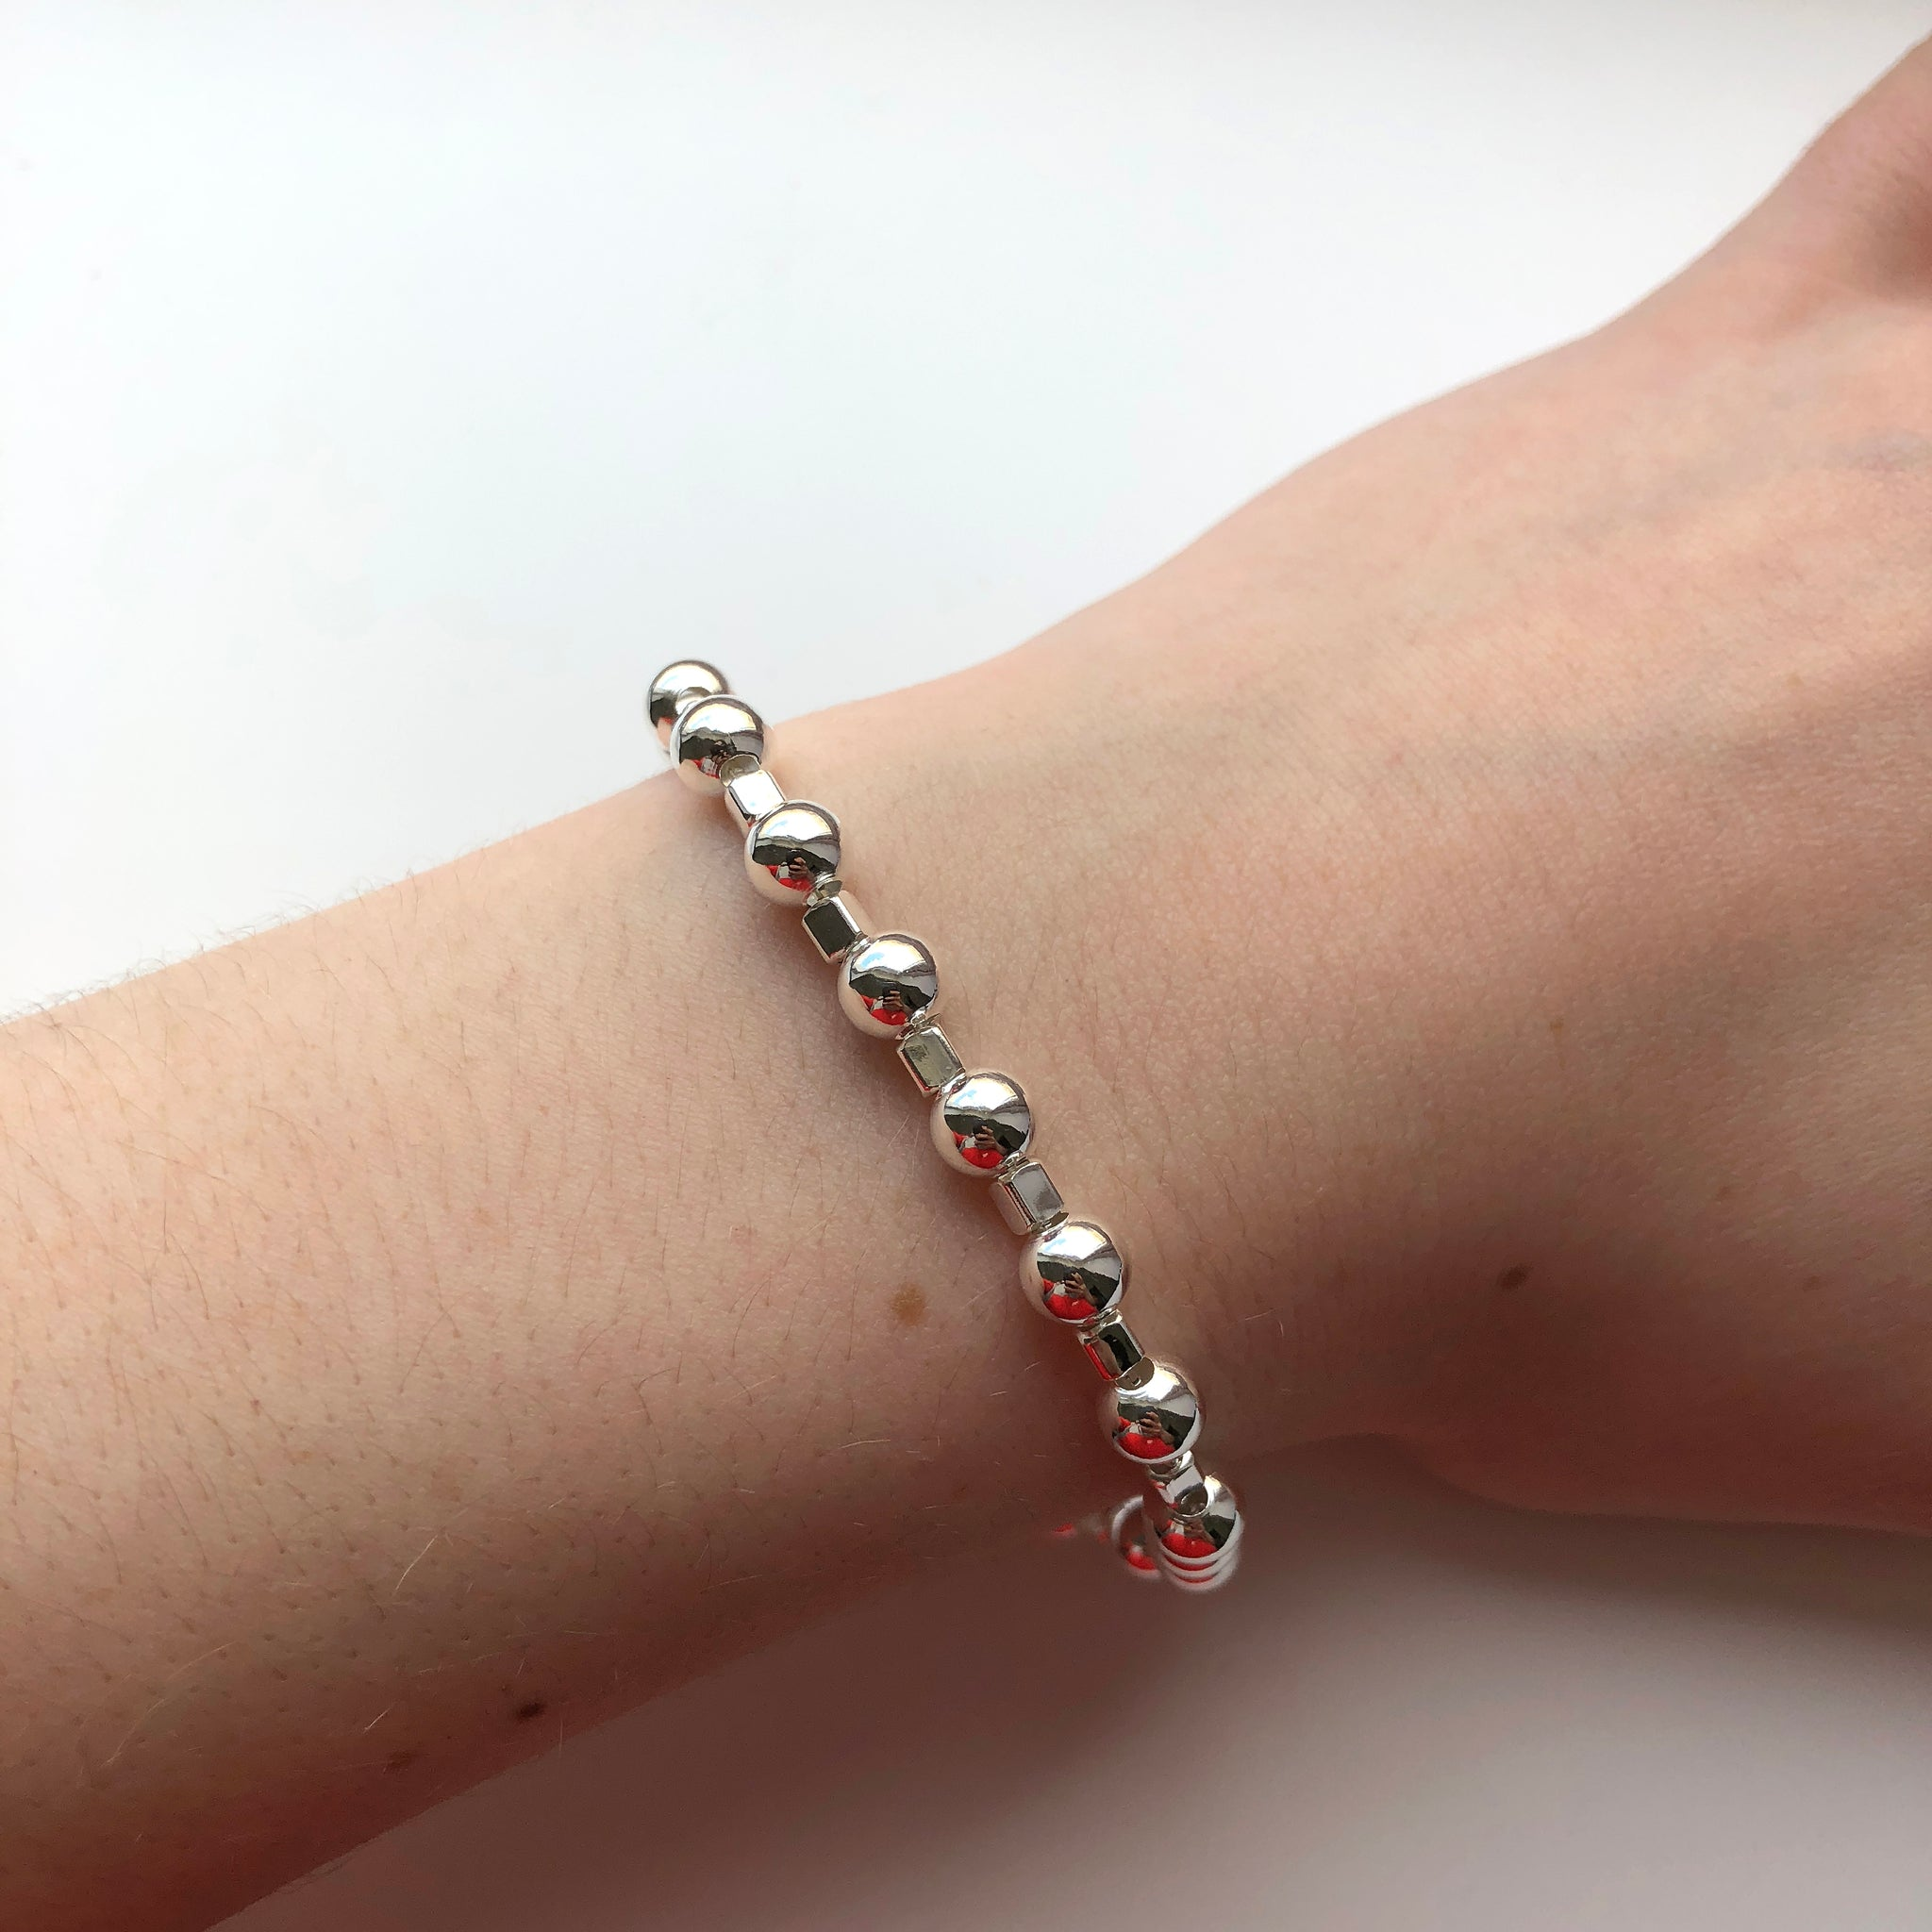 Sterling Silver Ball Linked Bracelet - NCB4